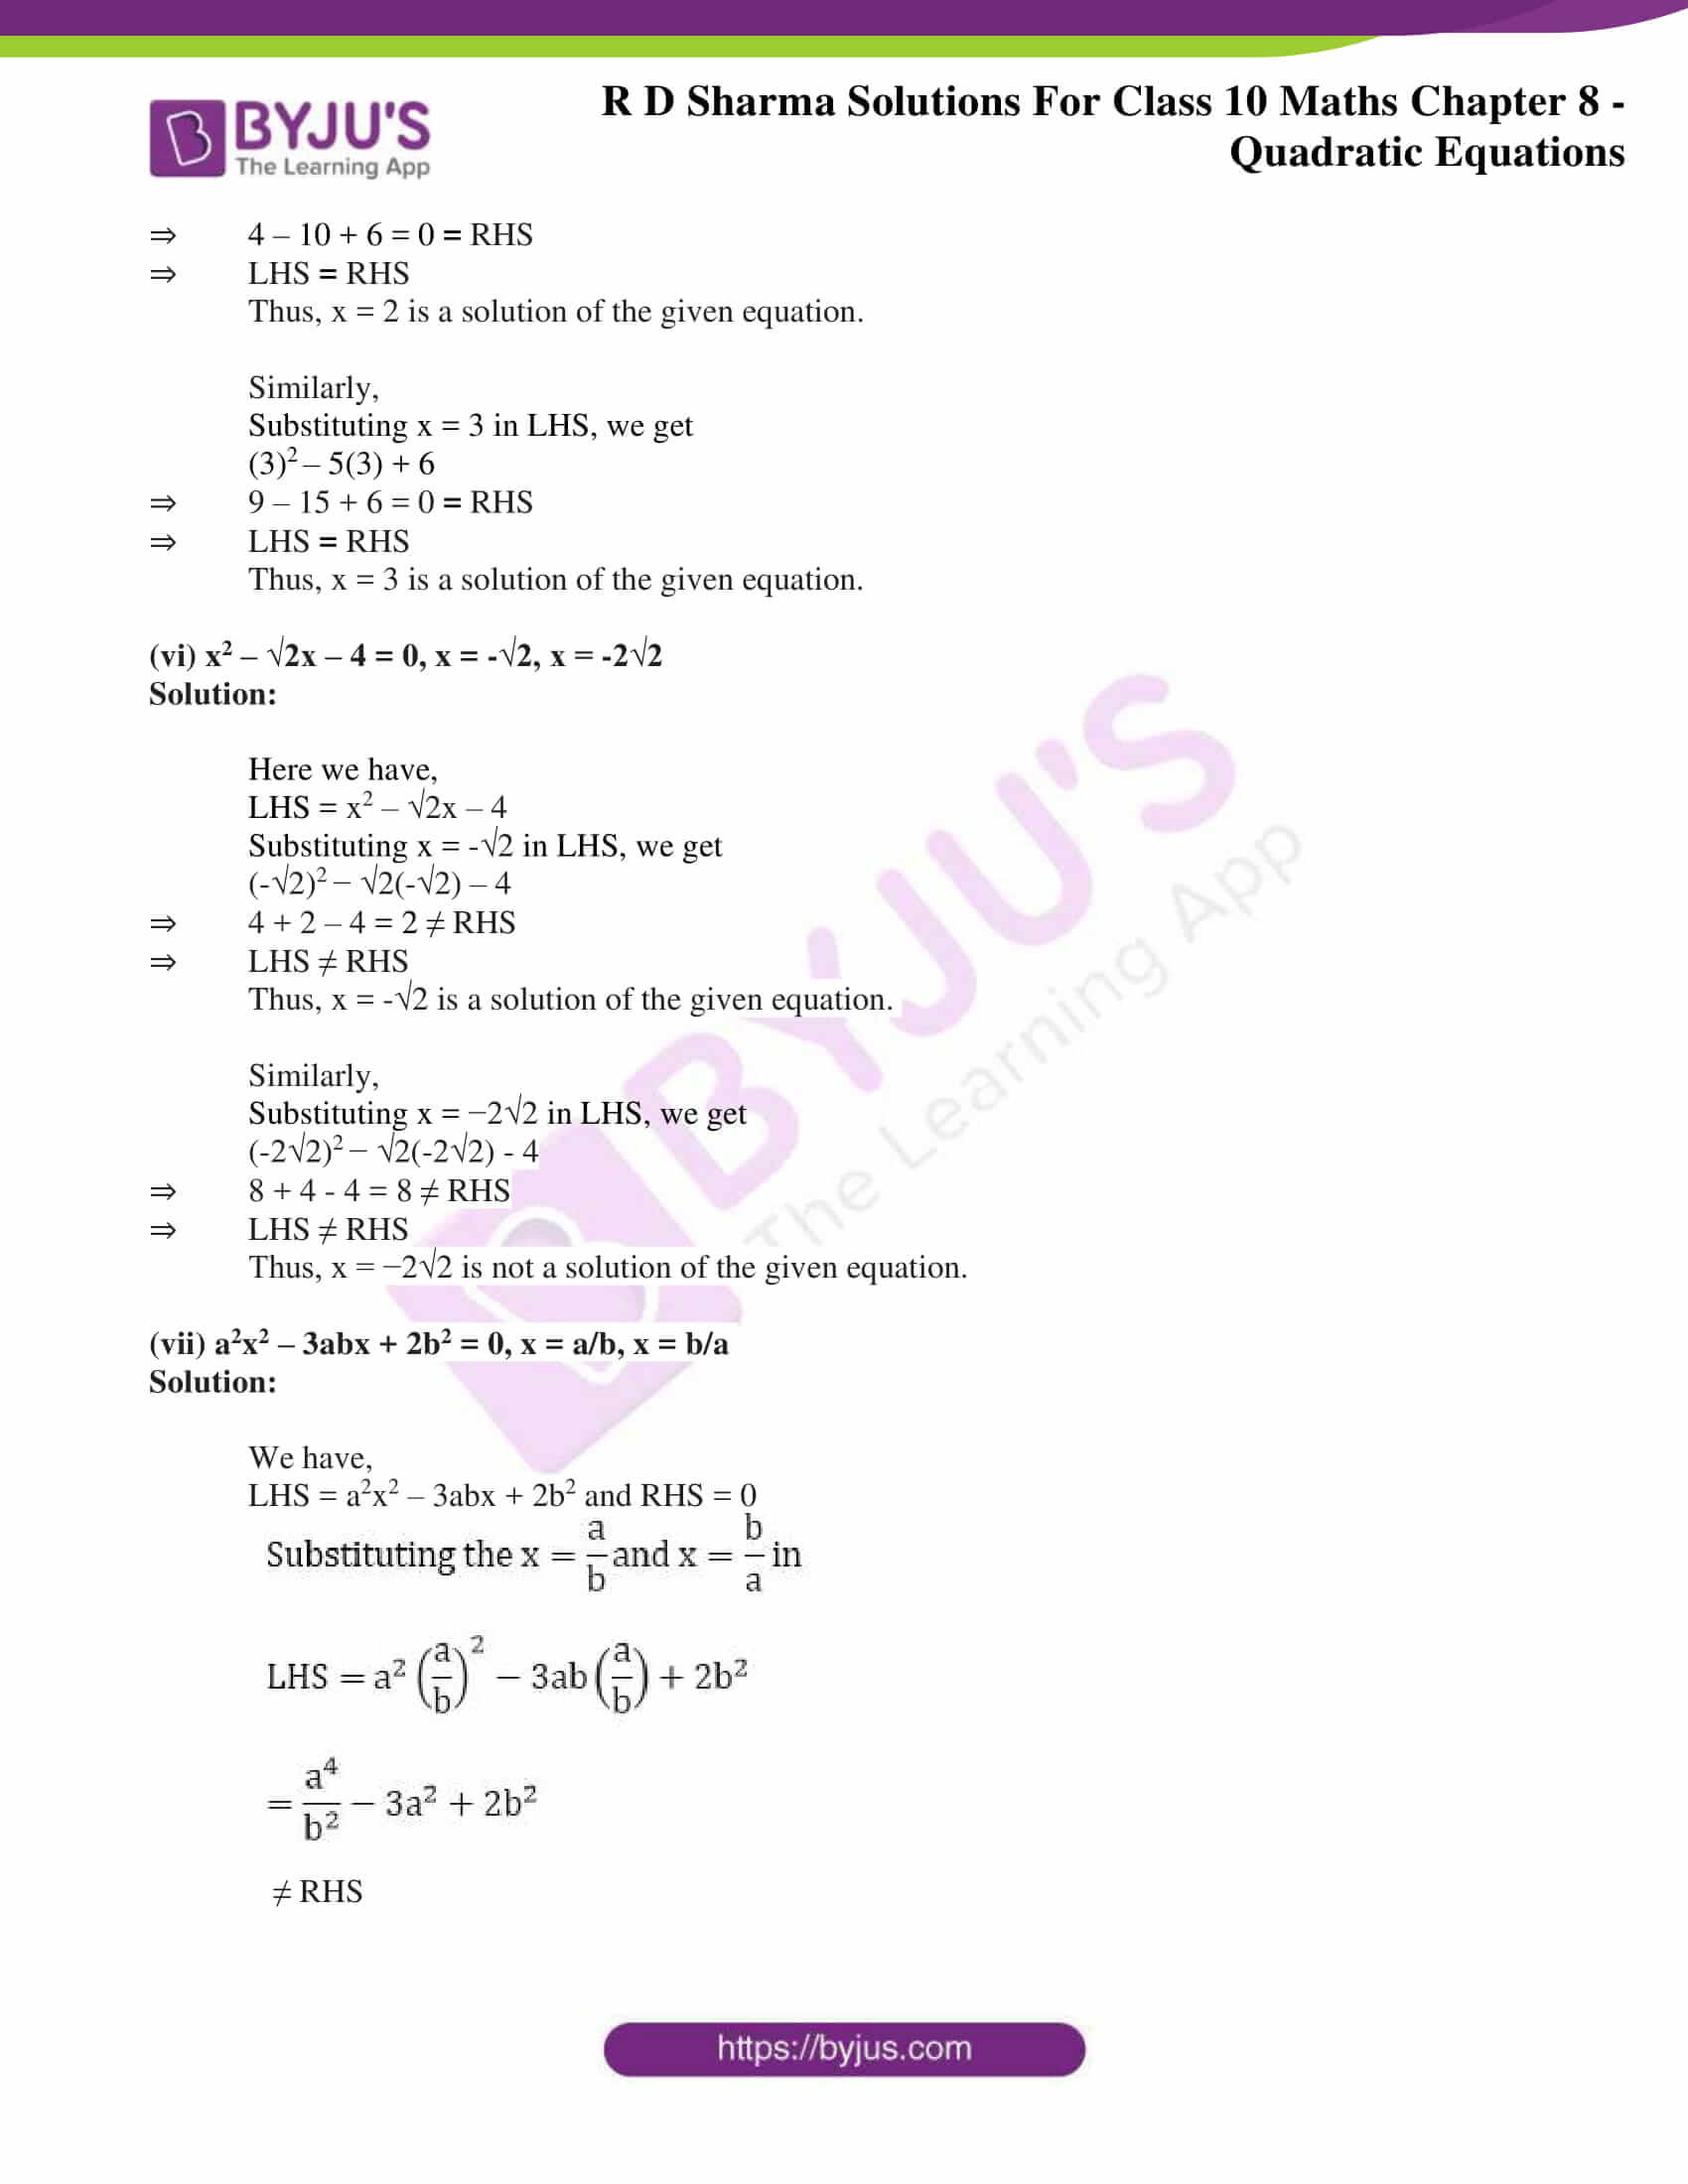 RD Sharma Solutions for Class 10 Chapter 8 Quadratic Equations 06